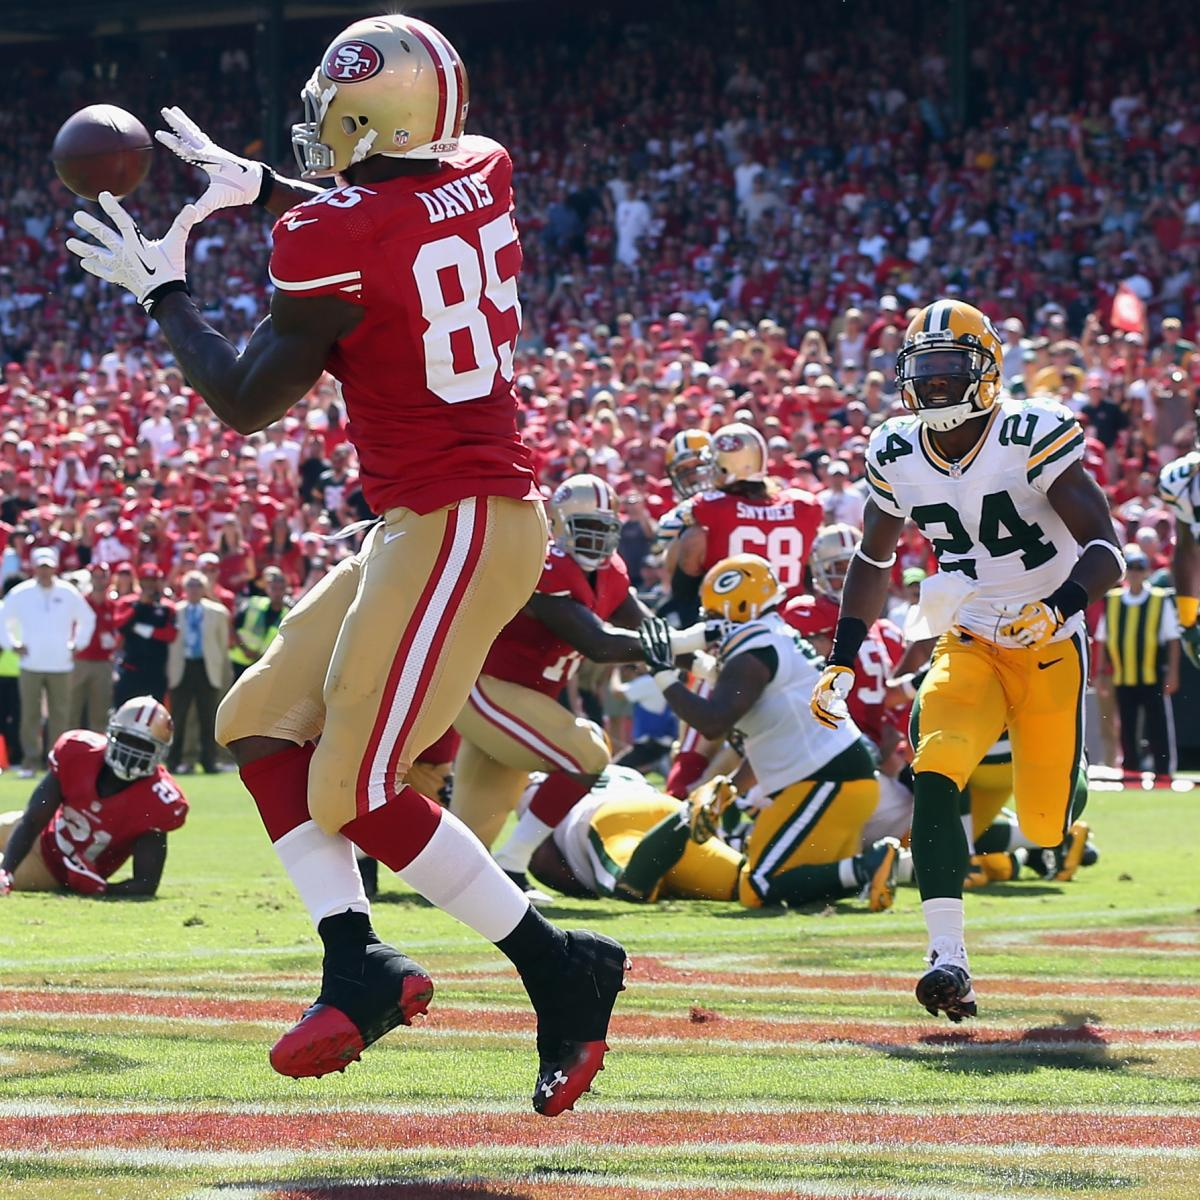 San francisco 49ers vs green bay packers betting odds fourfold betting explained further crossword